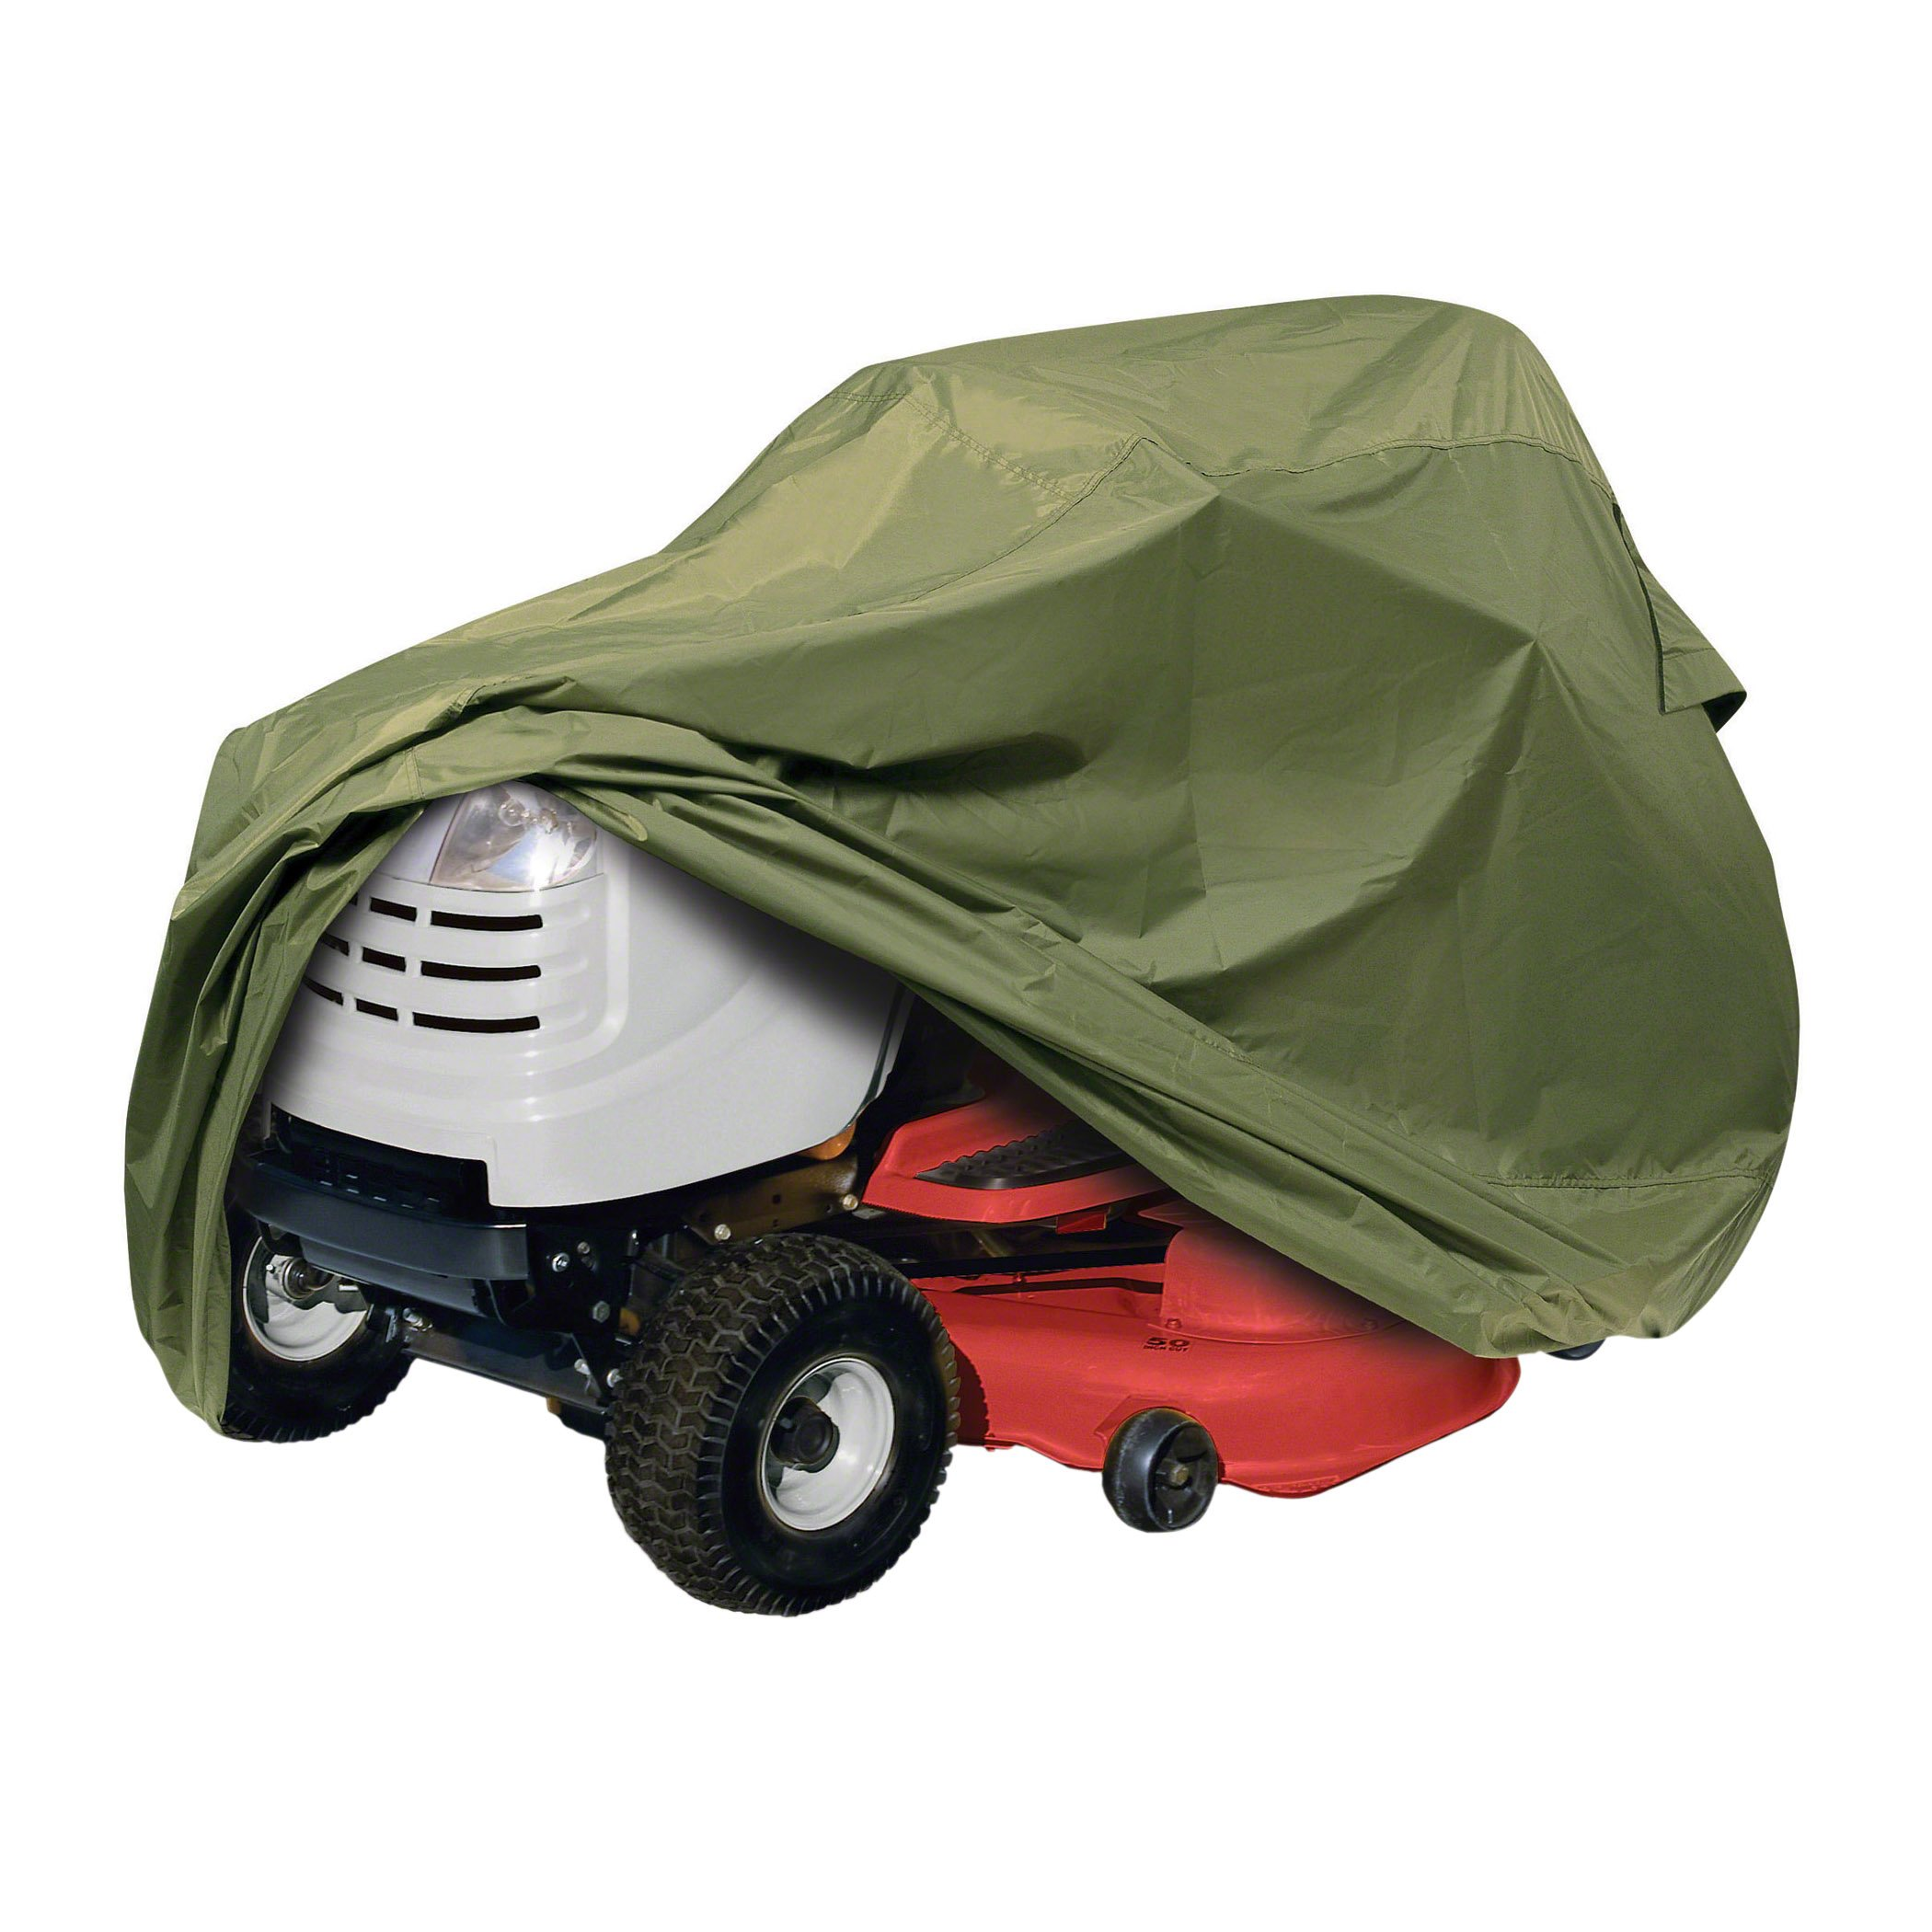 Classic Accessories 73910 Lawn Tractor Cover, Olive, Up to 54'' Decks